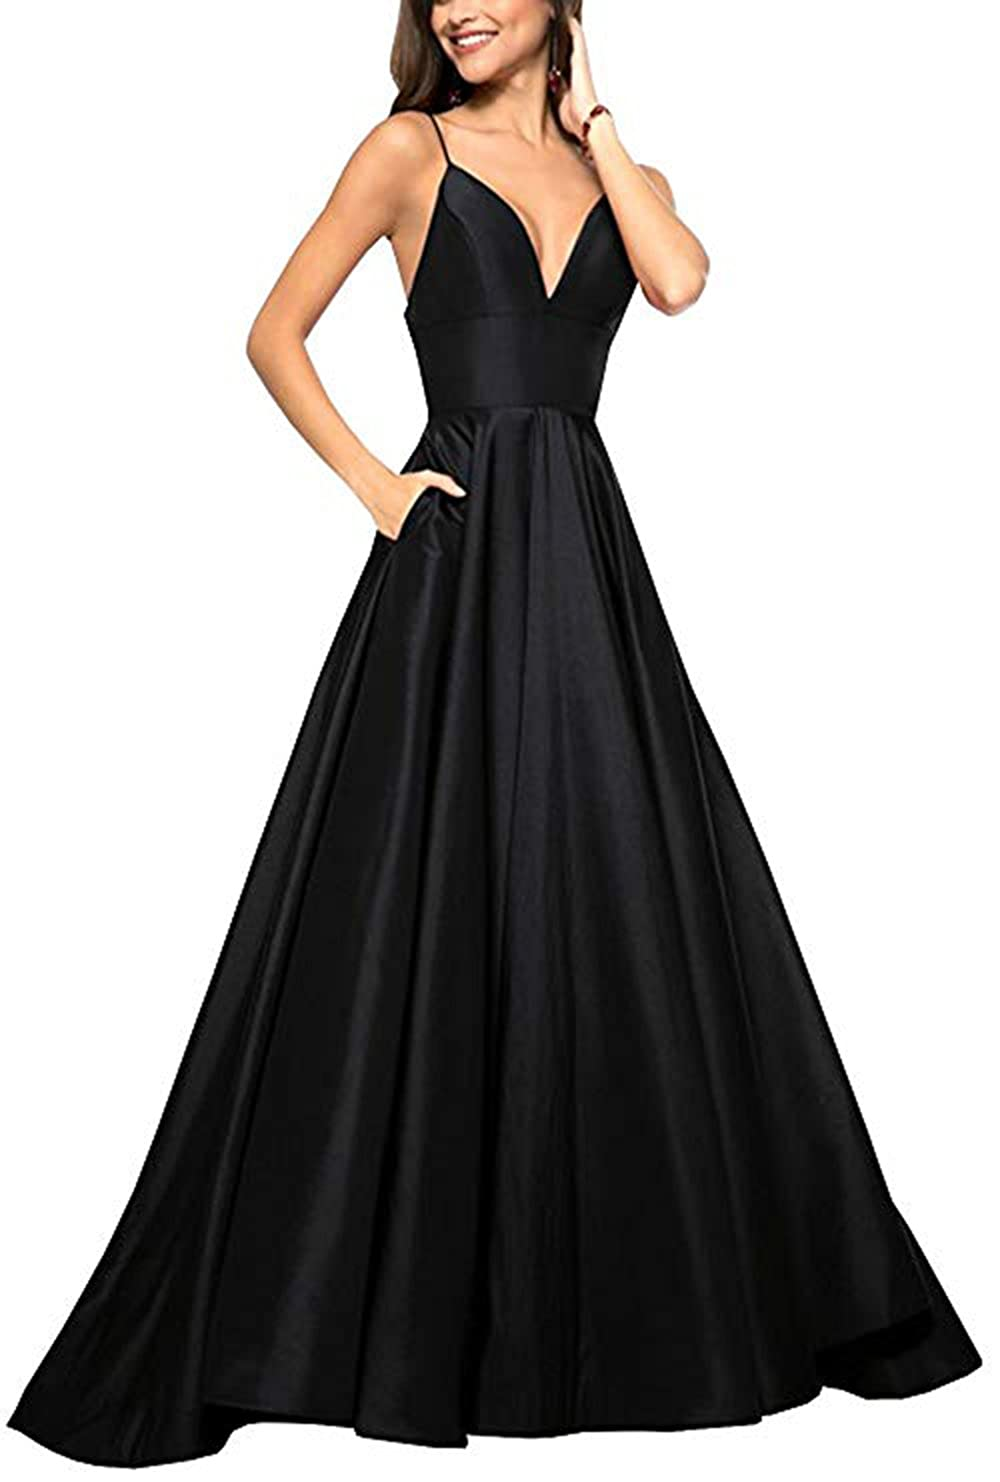 339ddc0b800 Womens Spaghetti Strap V Neck Prom Dresses Long 2019 A-line Satin Formal  Evening Ball Gowns with Pockets at Amazon Women s Clothing store